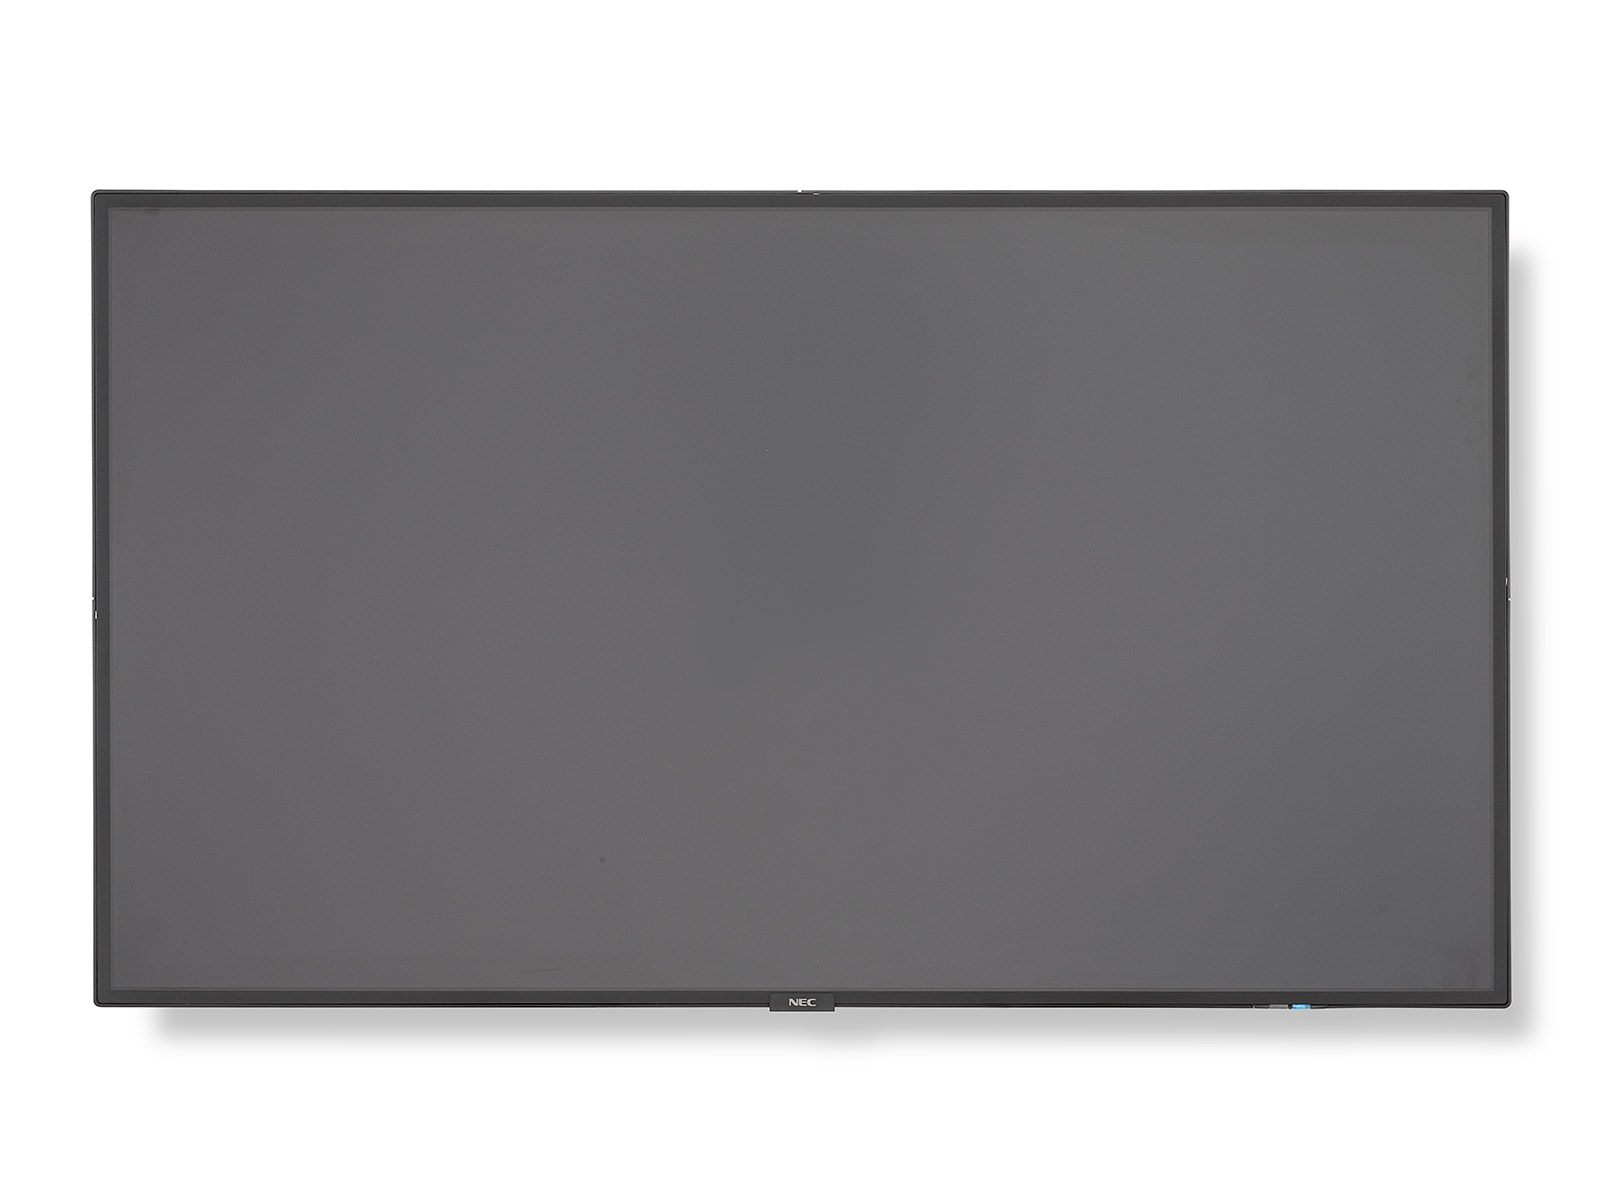 "MultiSync® V484 LCD 48"" Midrange Large Format Display"